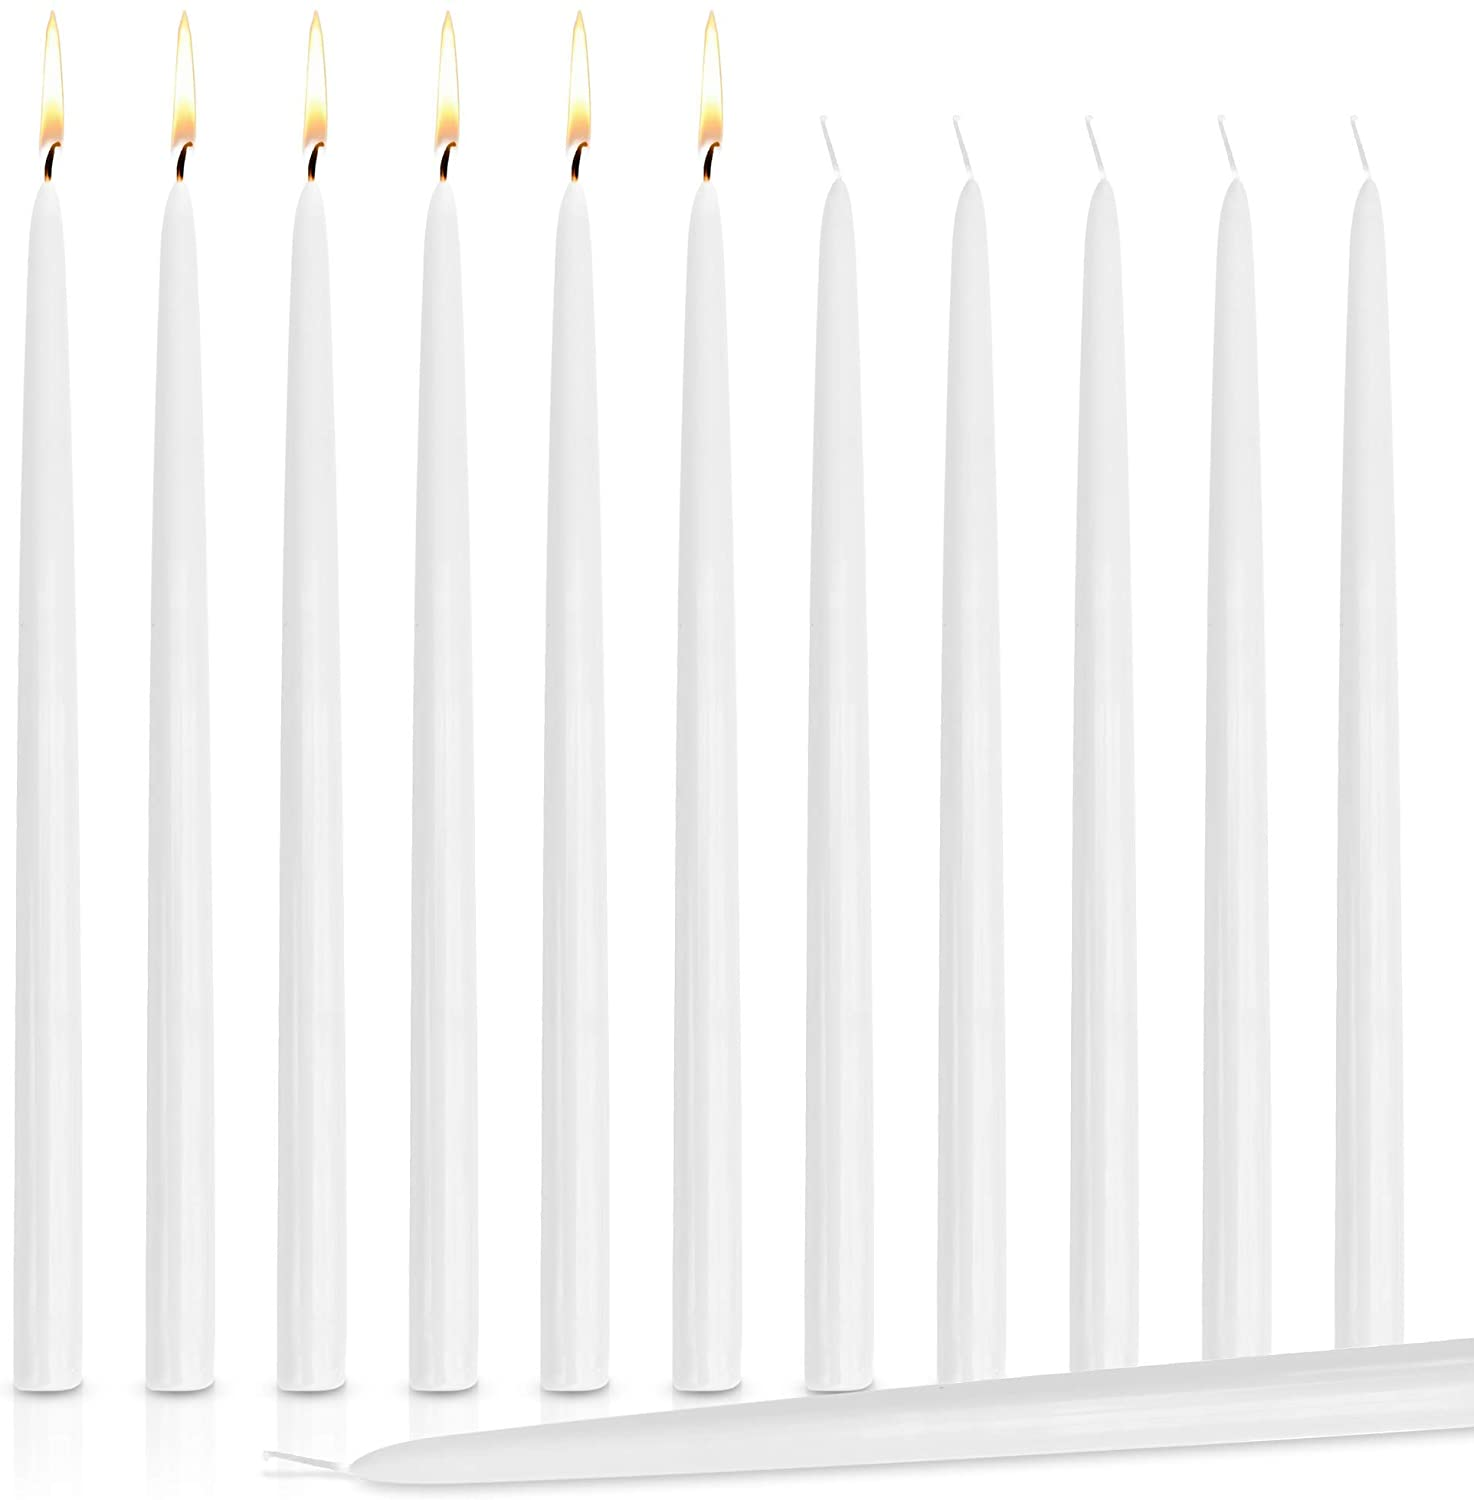 24 Inch White Taper Candle (144pcs/cs)